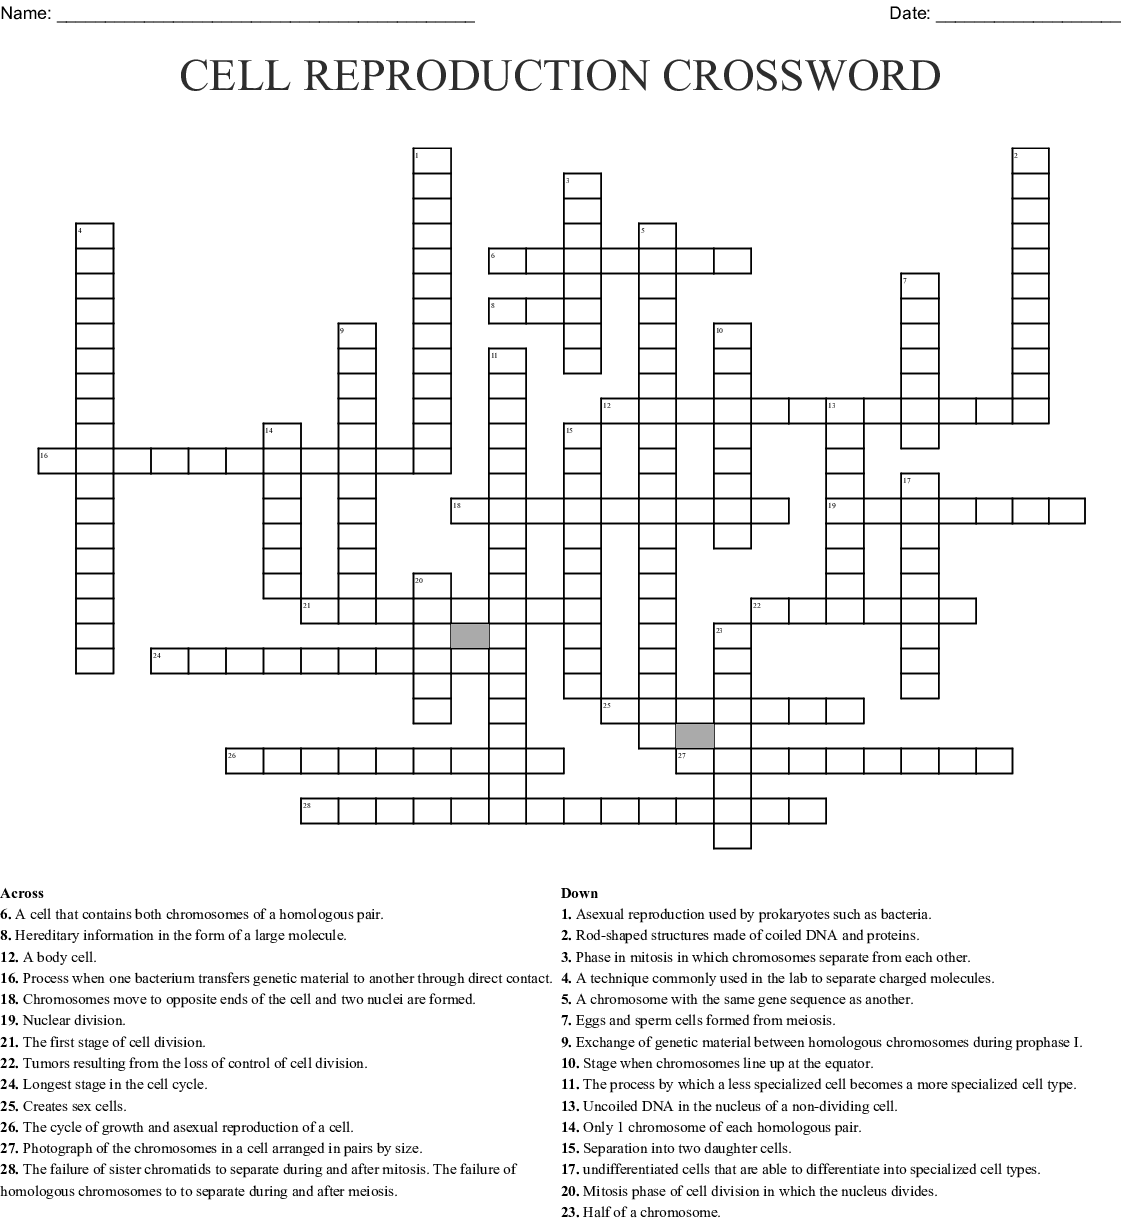 Chapter 11 Cell Reproduction Worksheet Answers